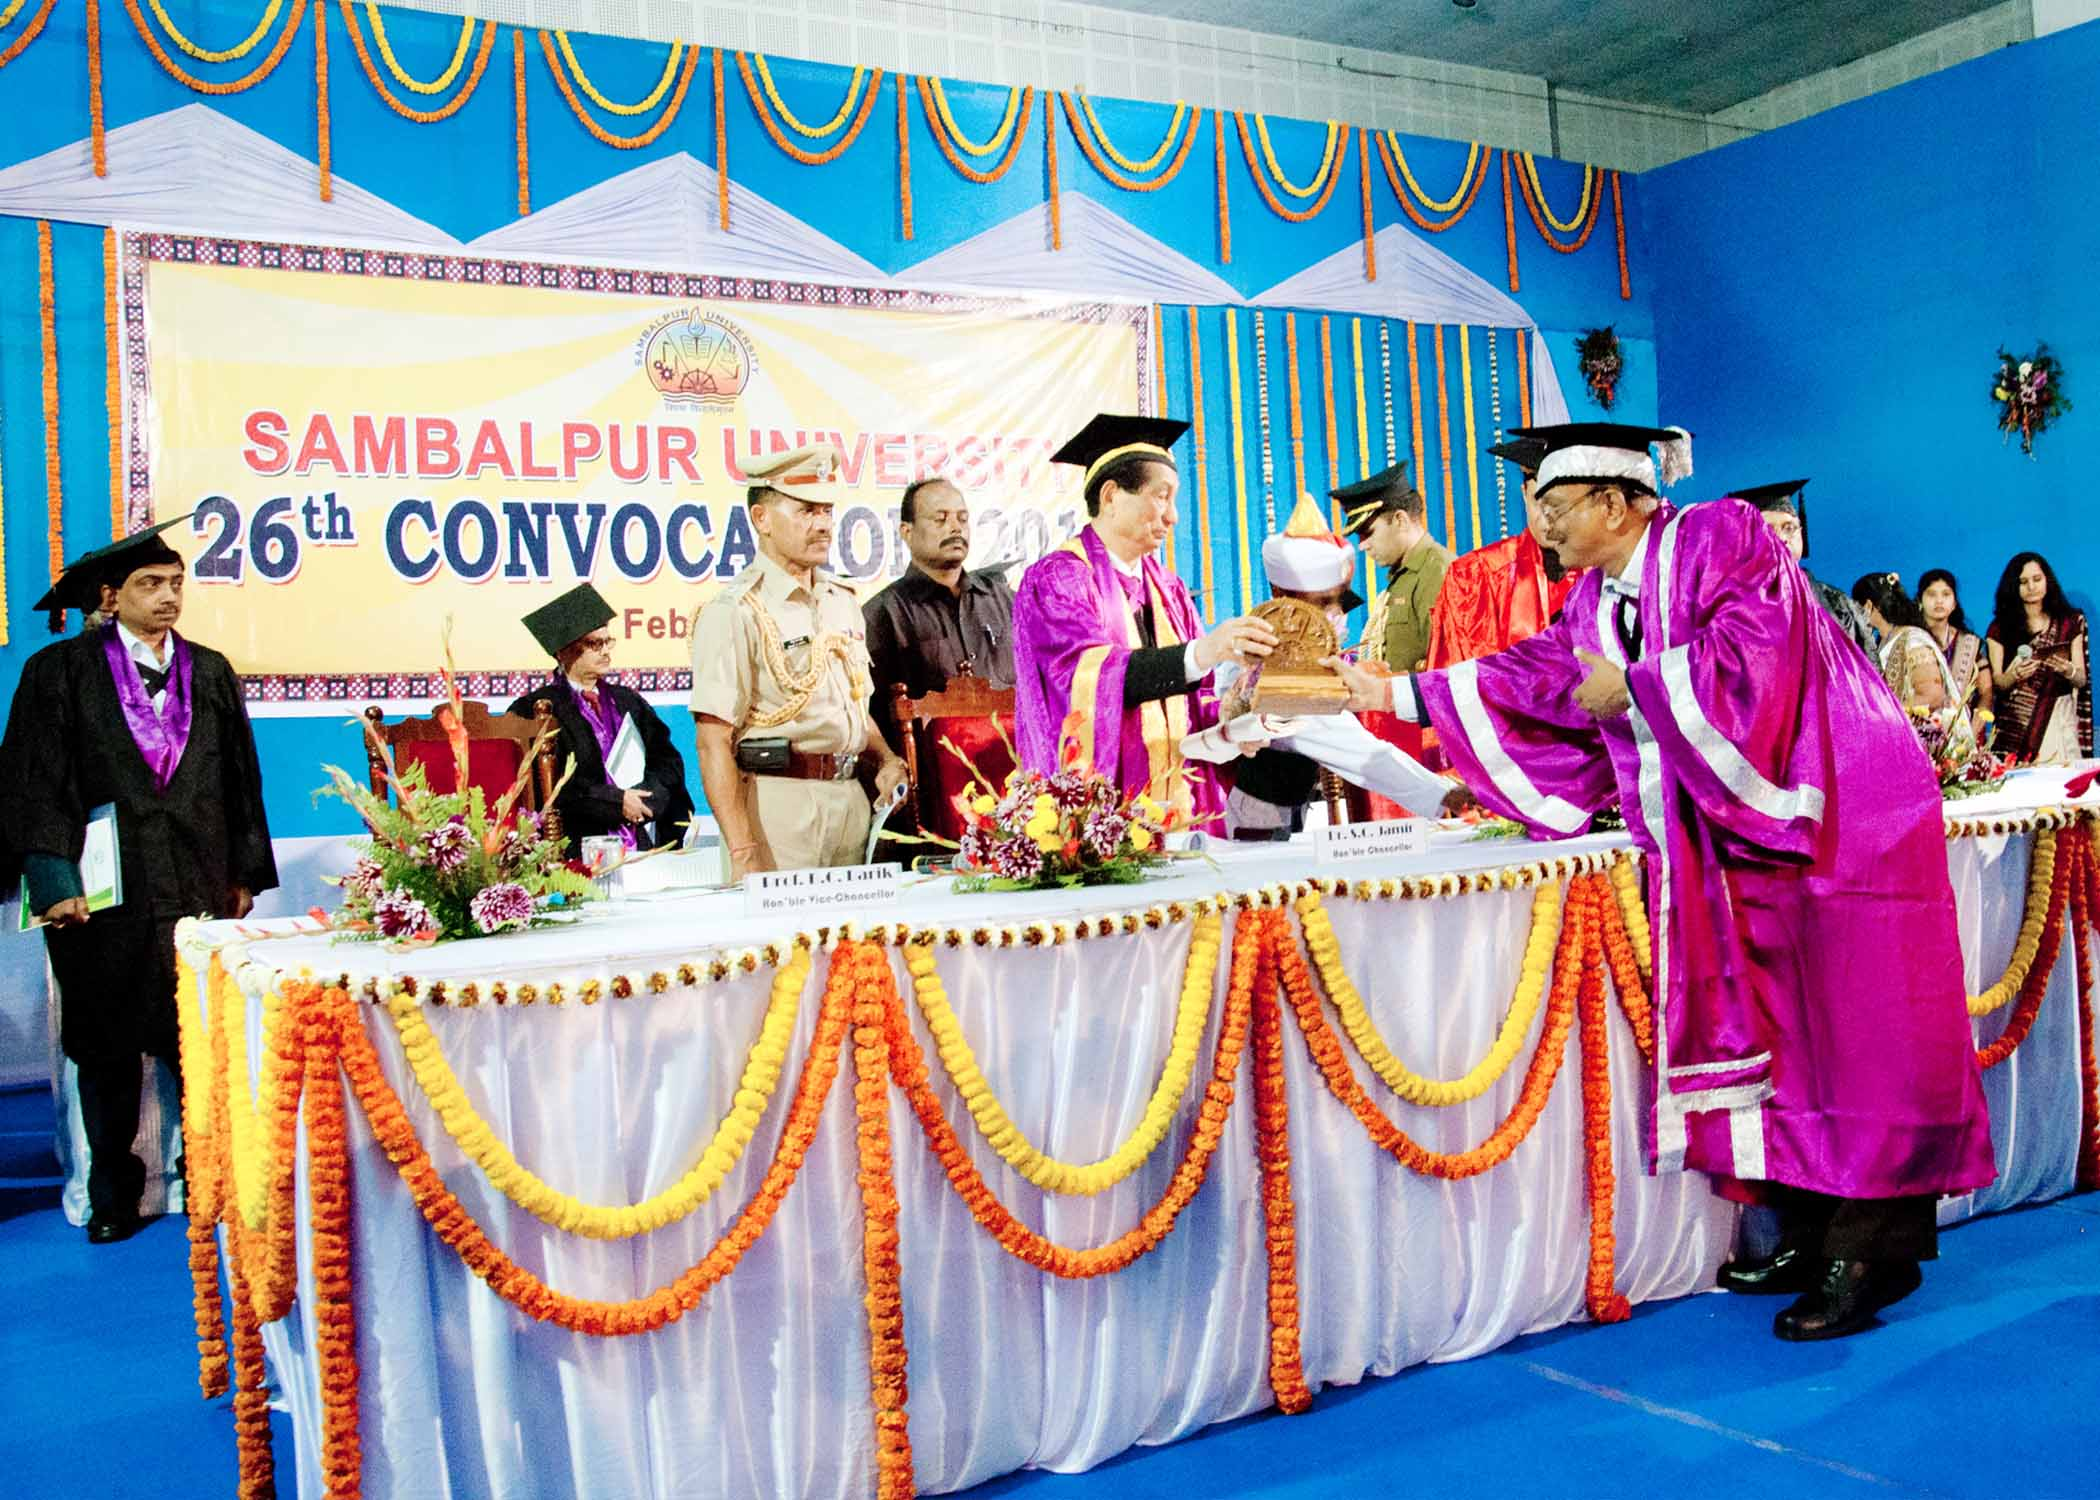 Album of Convocation 2012